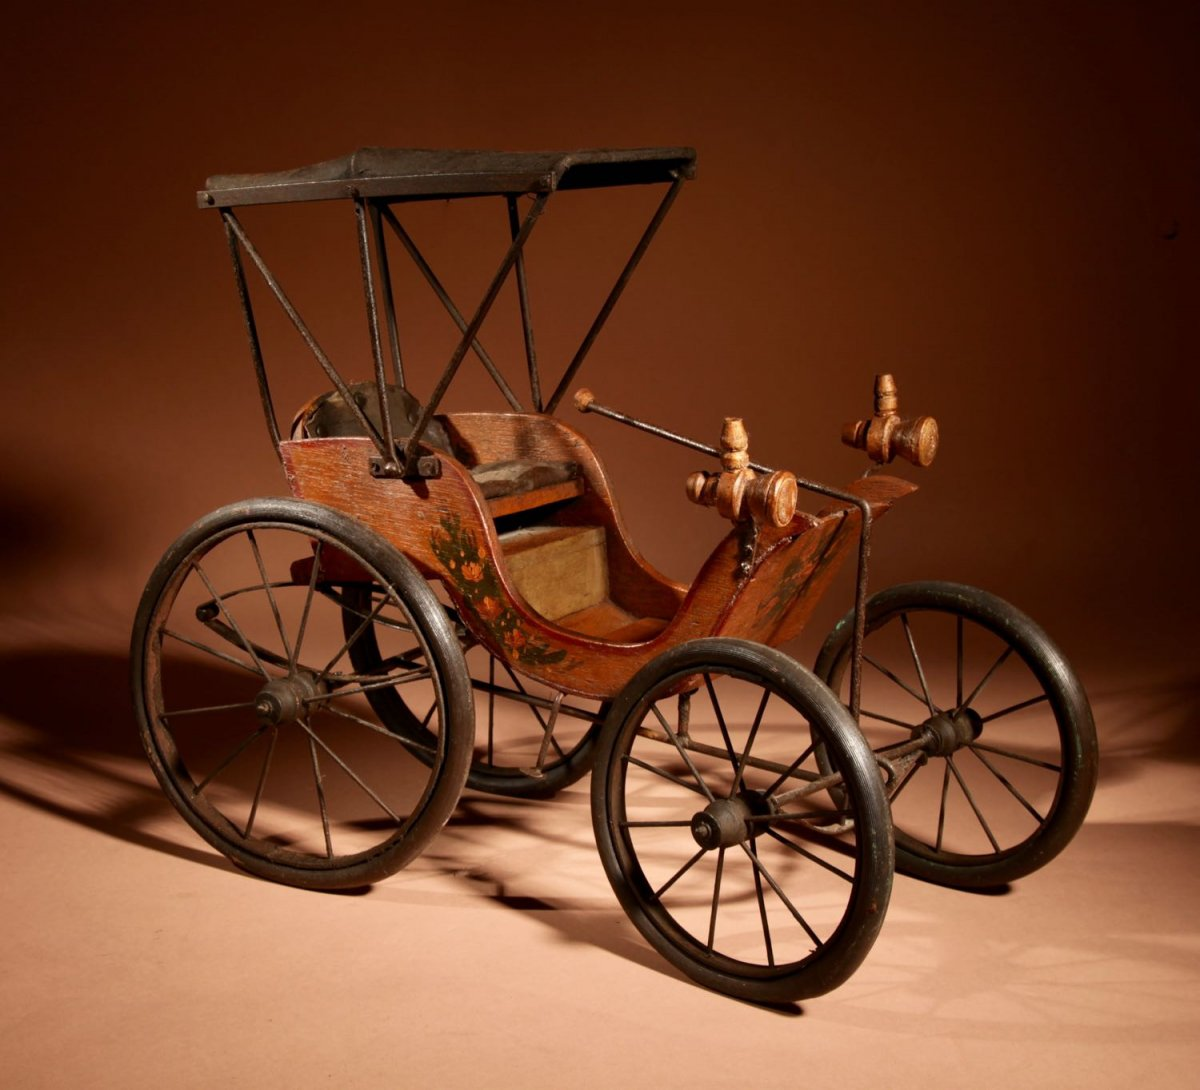 Car Model After The American Model Of Duryea Automobile 1893-94